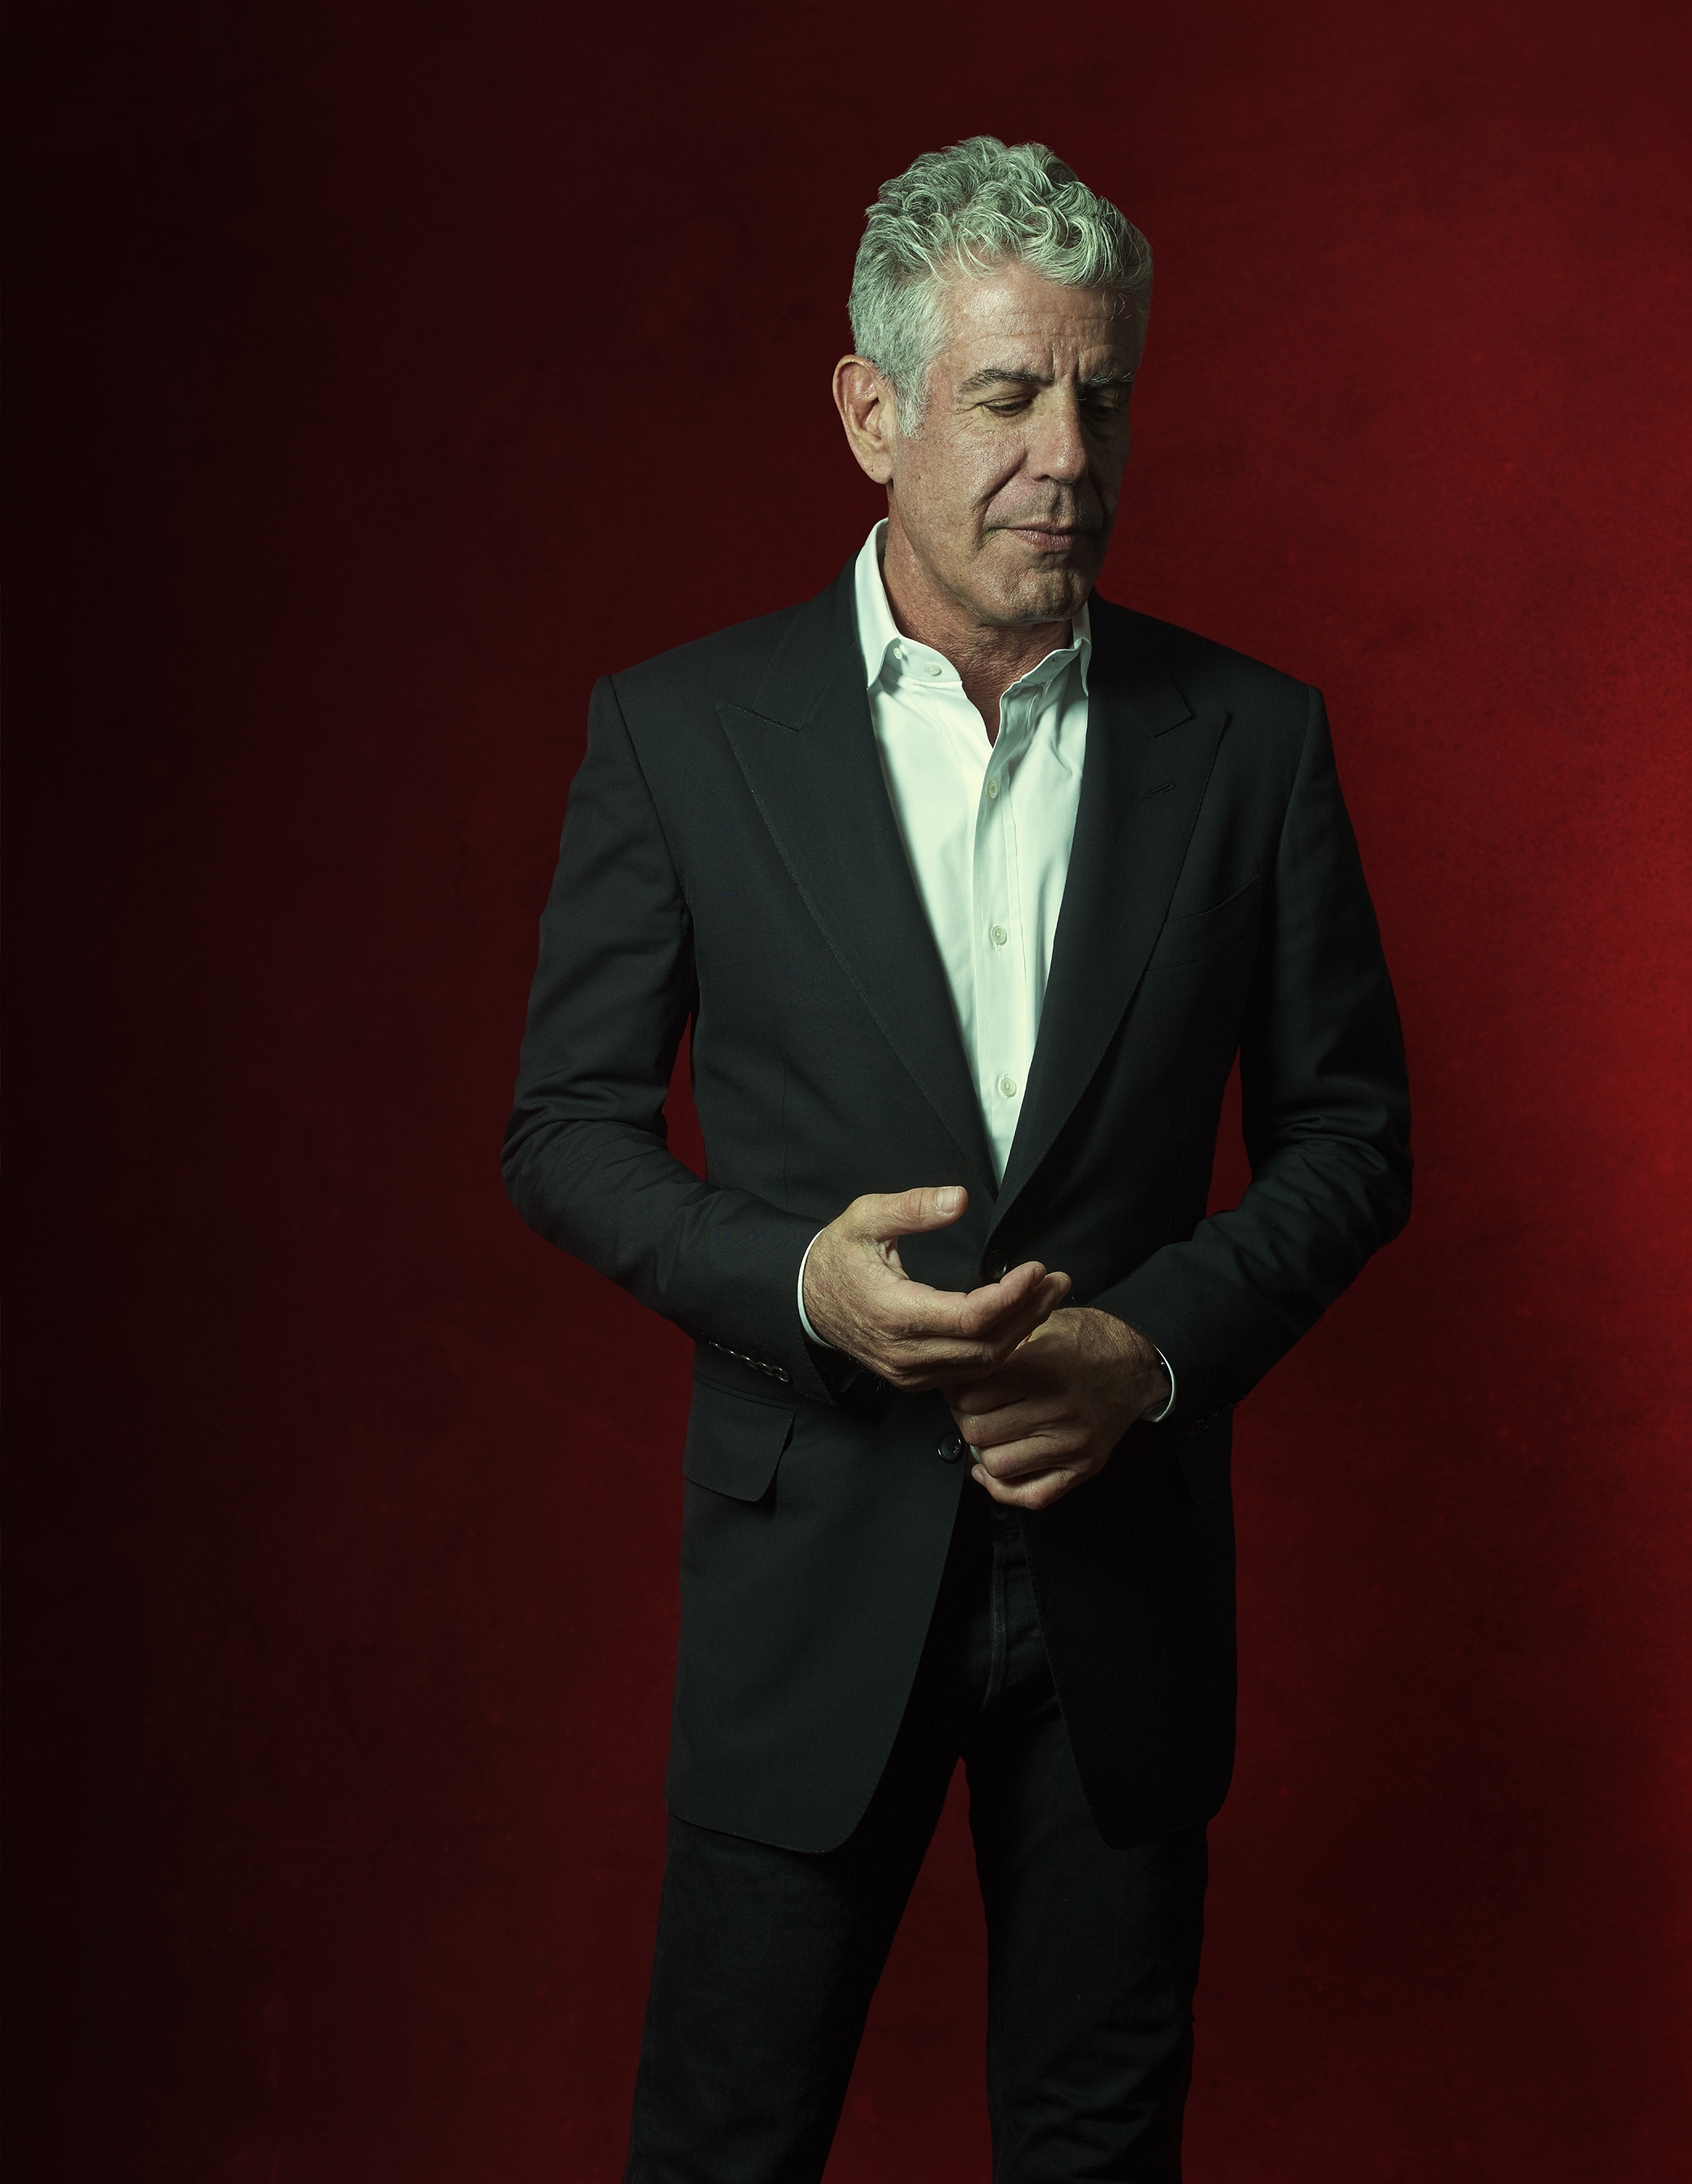 Anthony-Bourdain-by-Robert-Ascroft-001